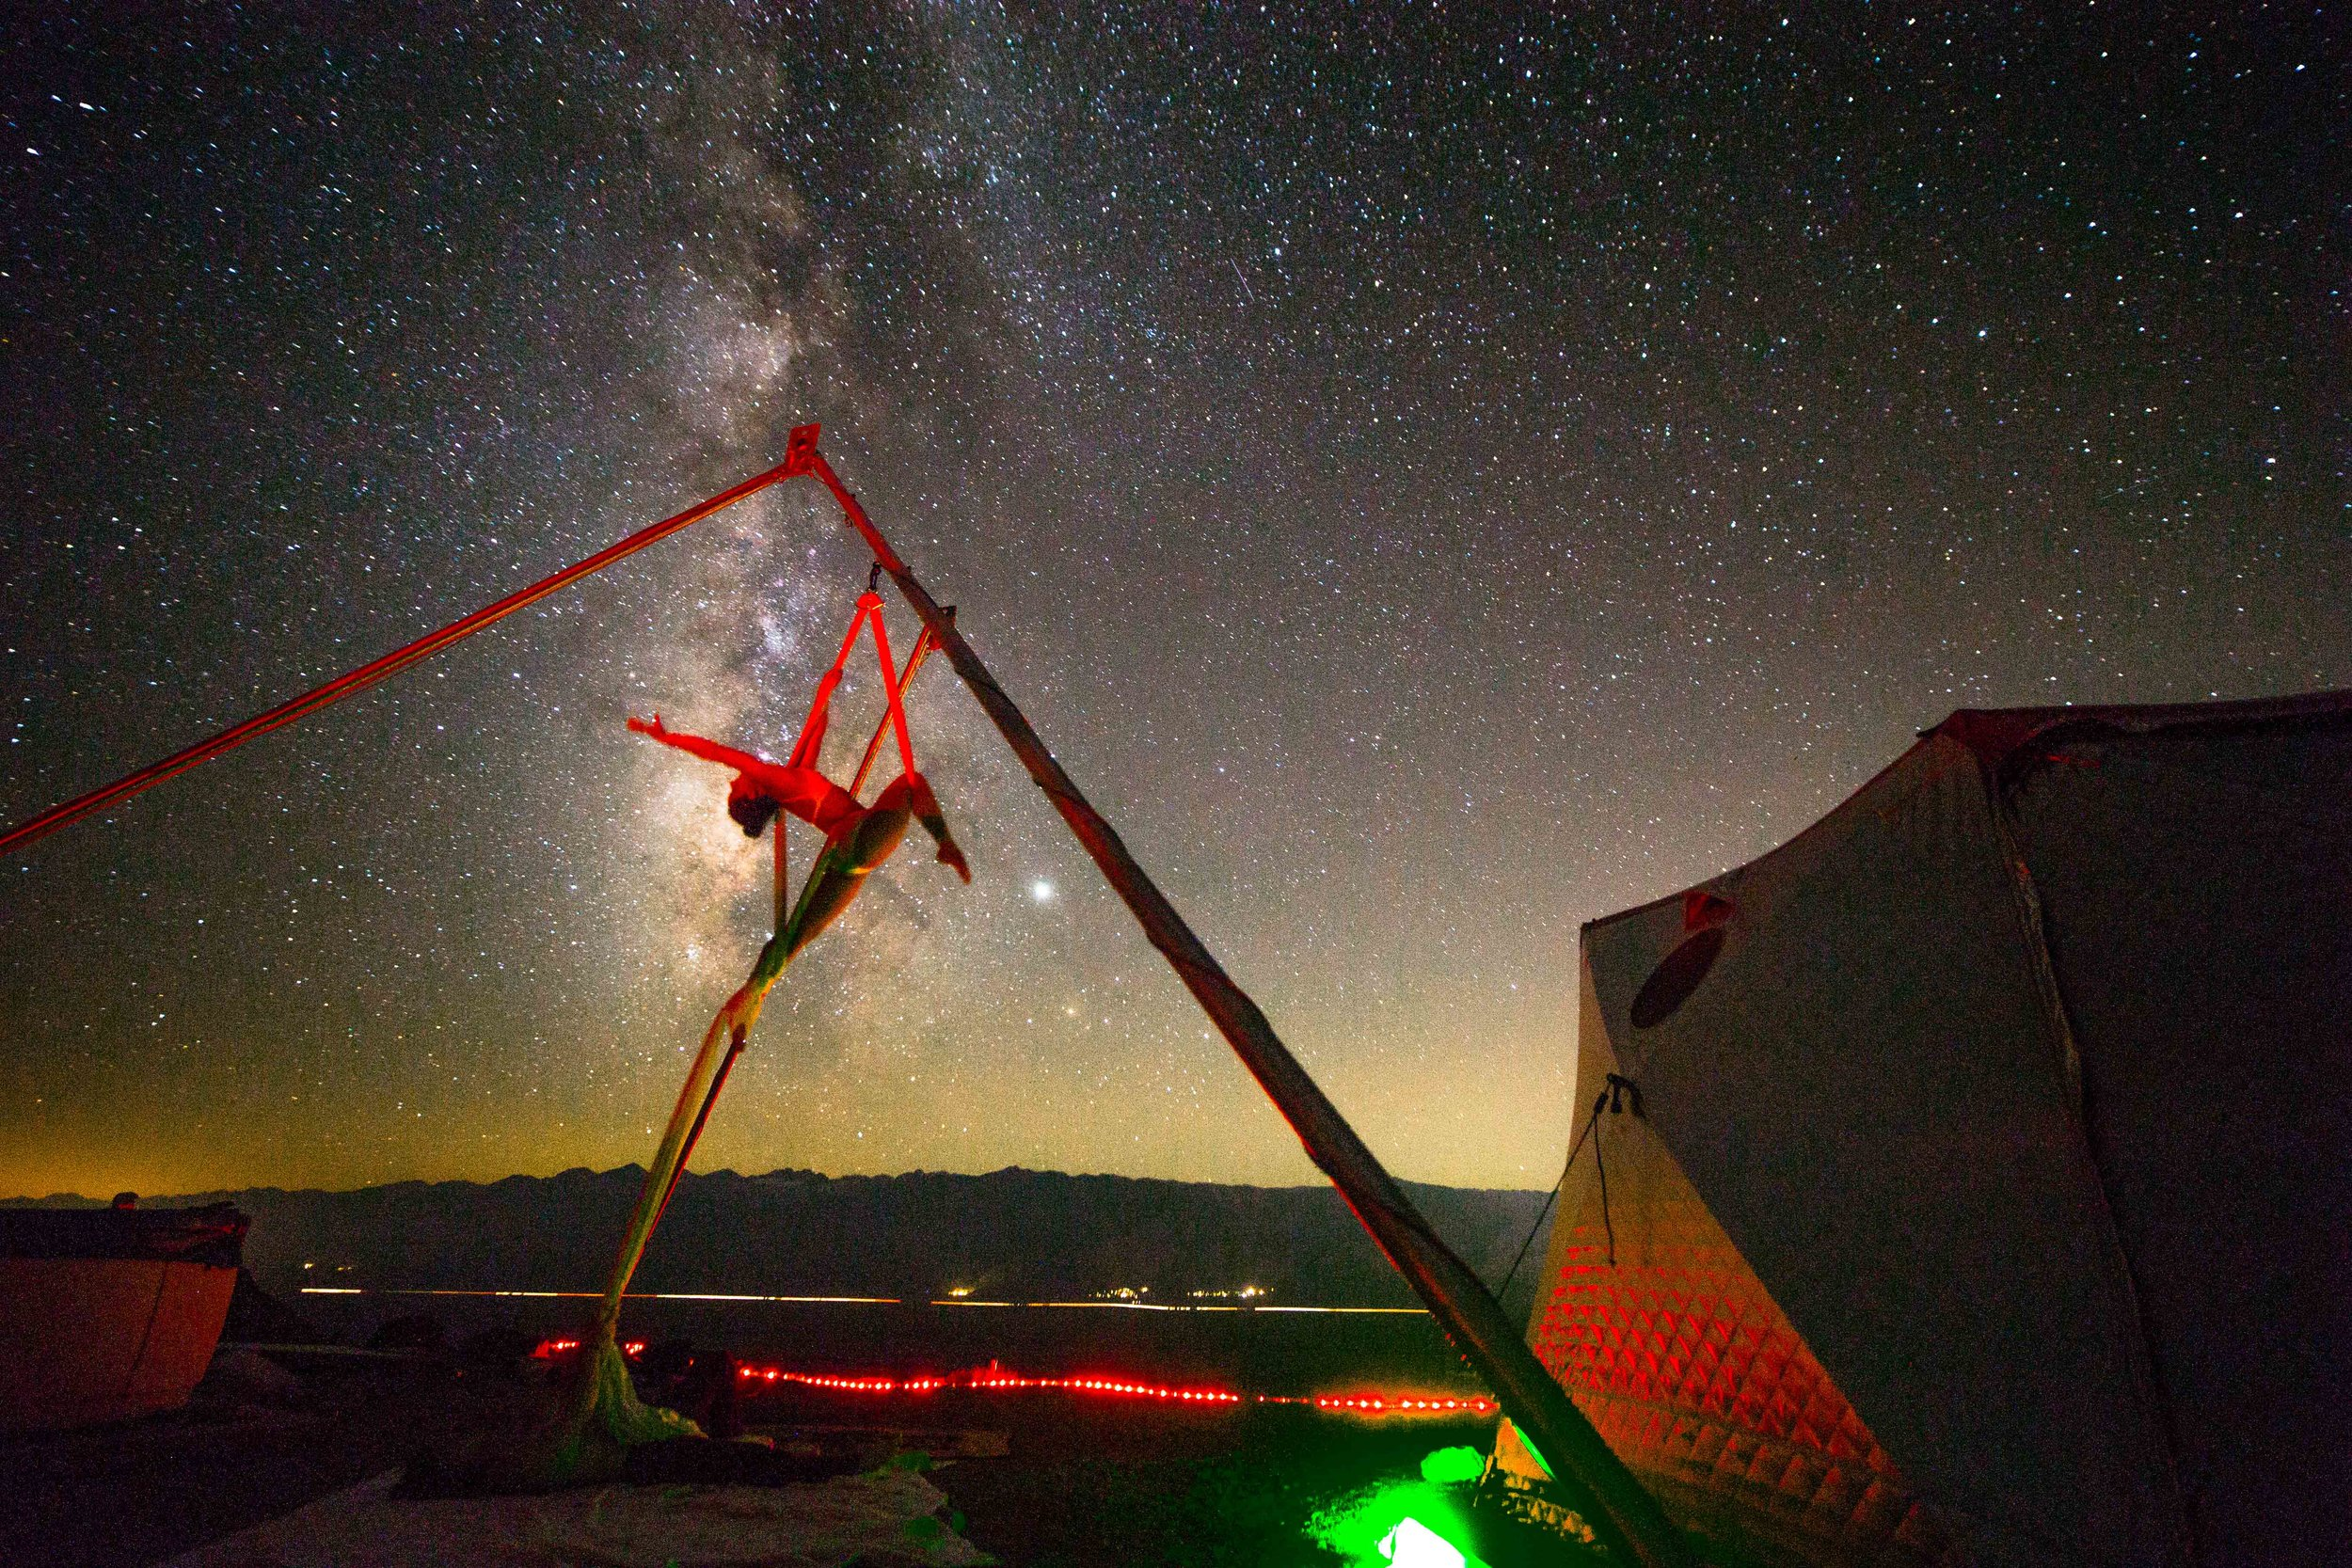 High resolution digital pictures included of you on the silks under the stars are provided